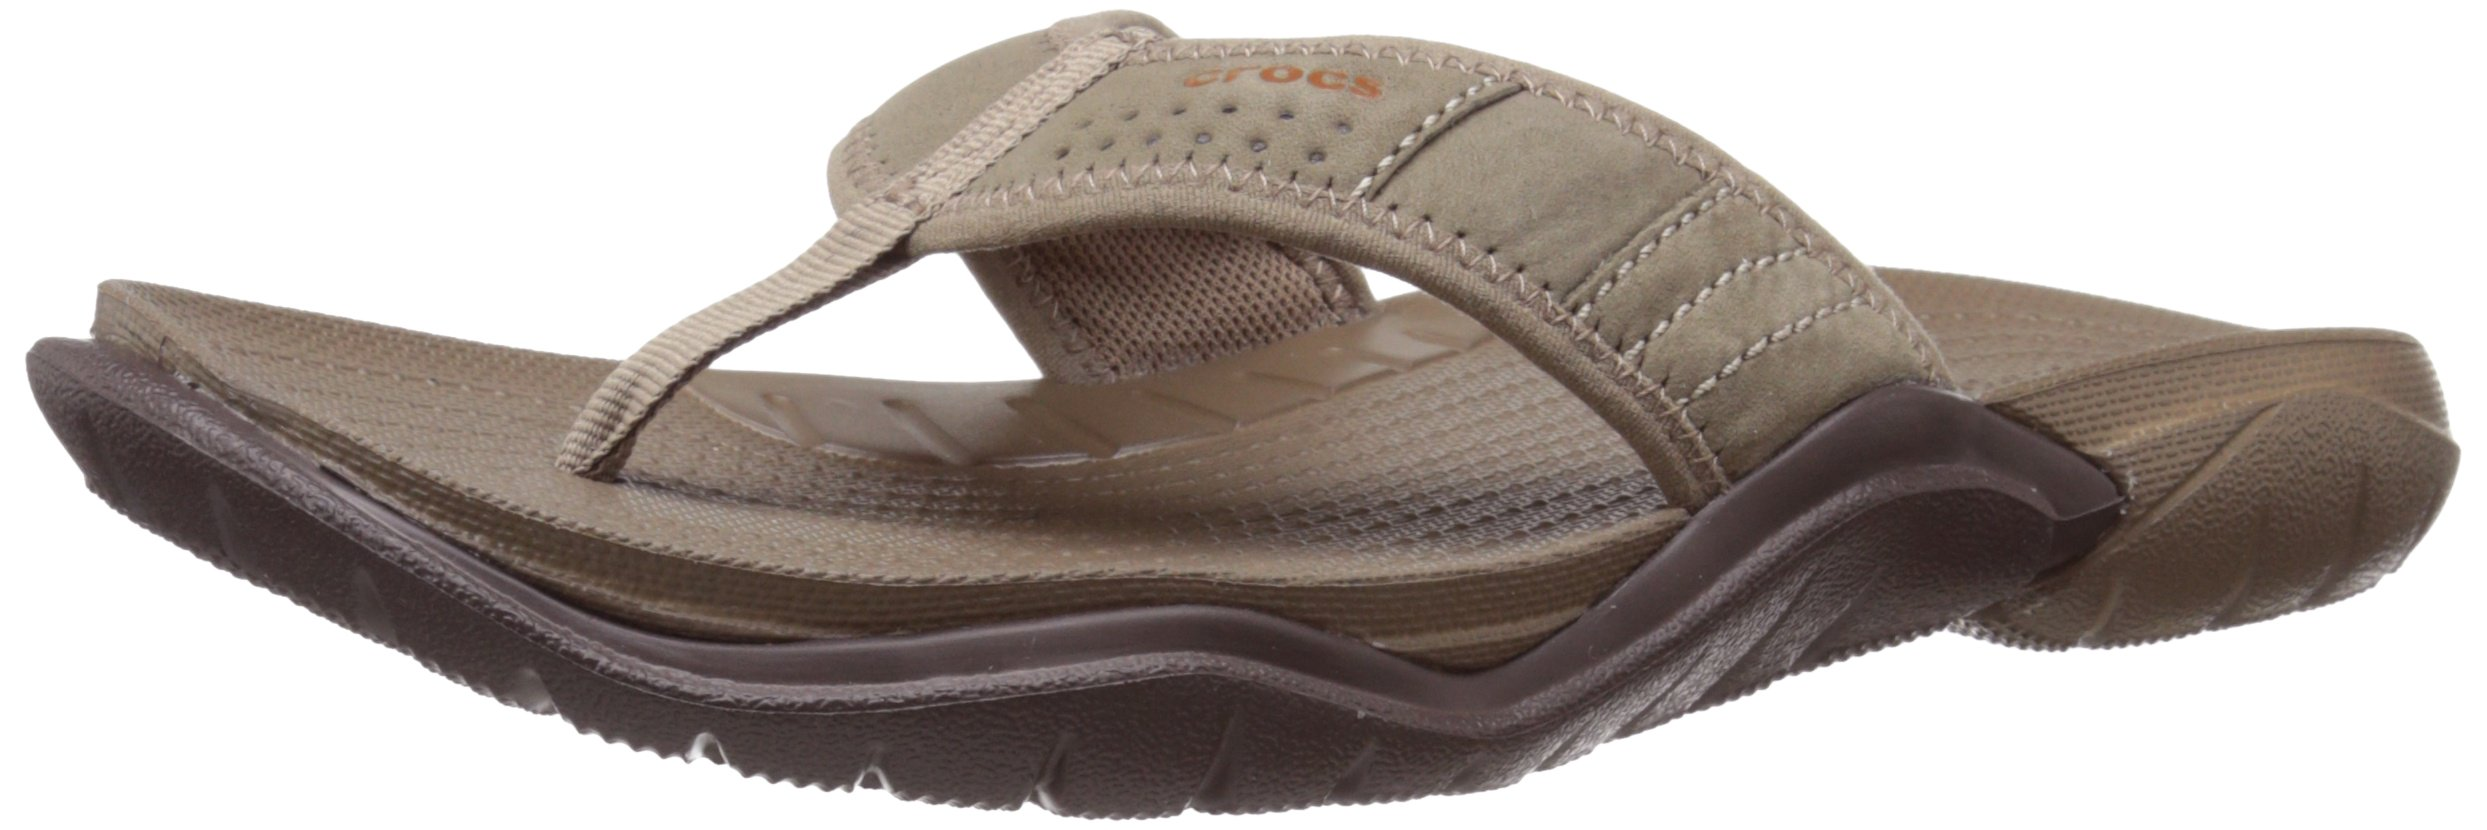 TG 4546 EU Marrone WalnutEspresso Crocs Swiftwater M Infradito Uomo Mar